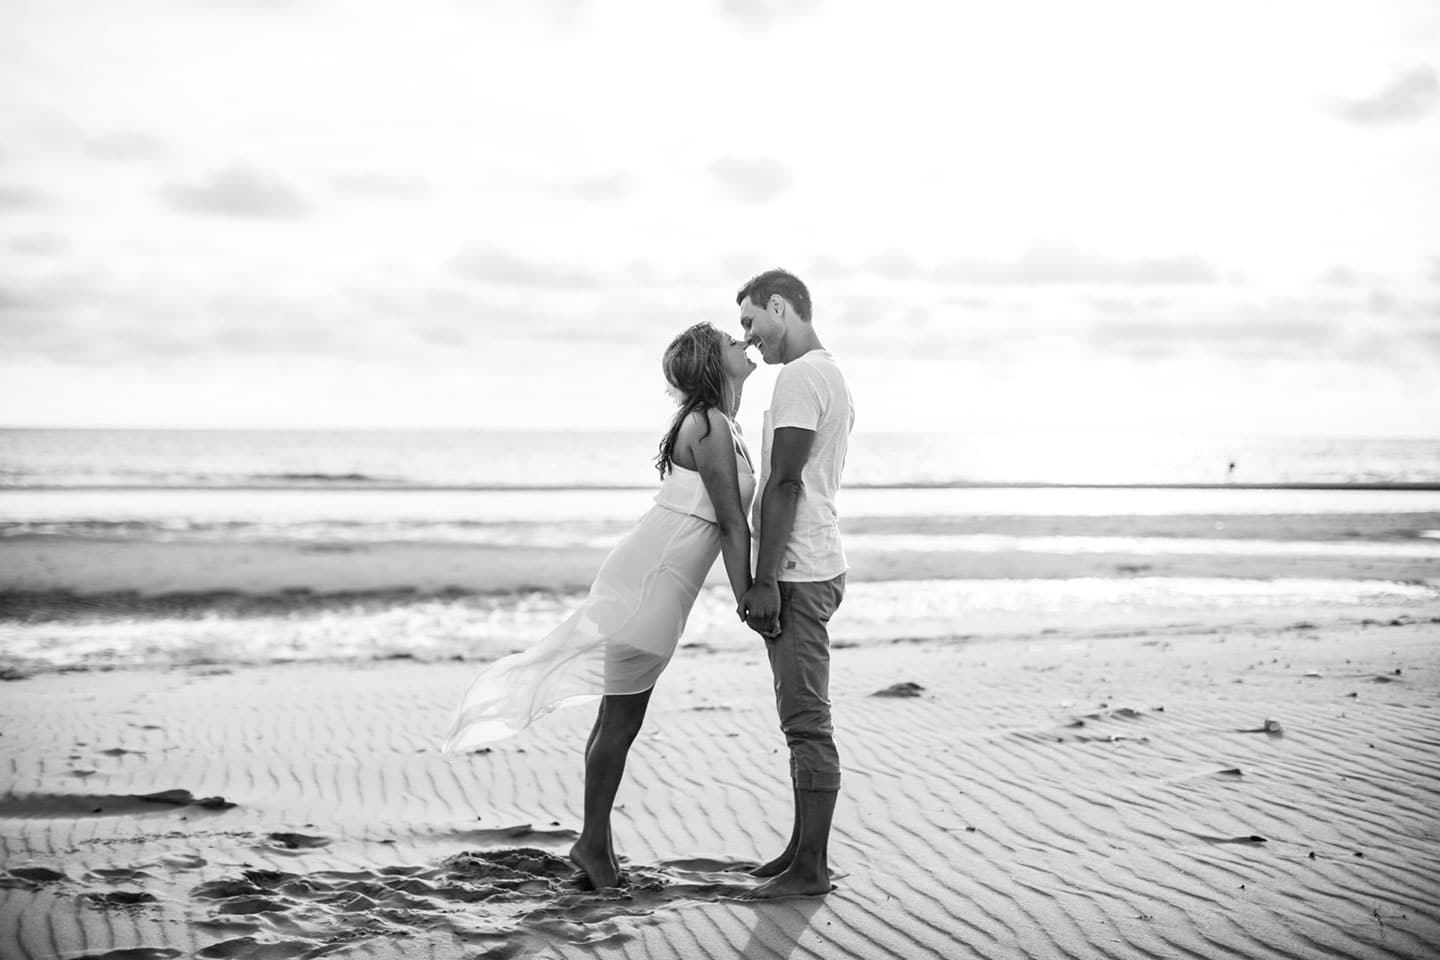 29-pre-wedding-love-shoot-holland